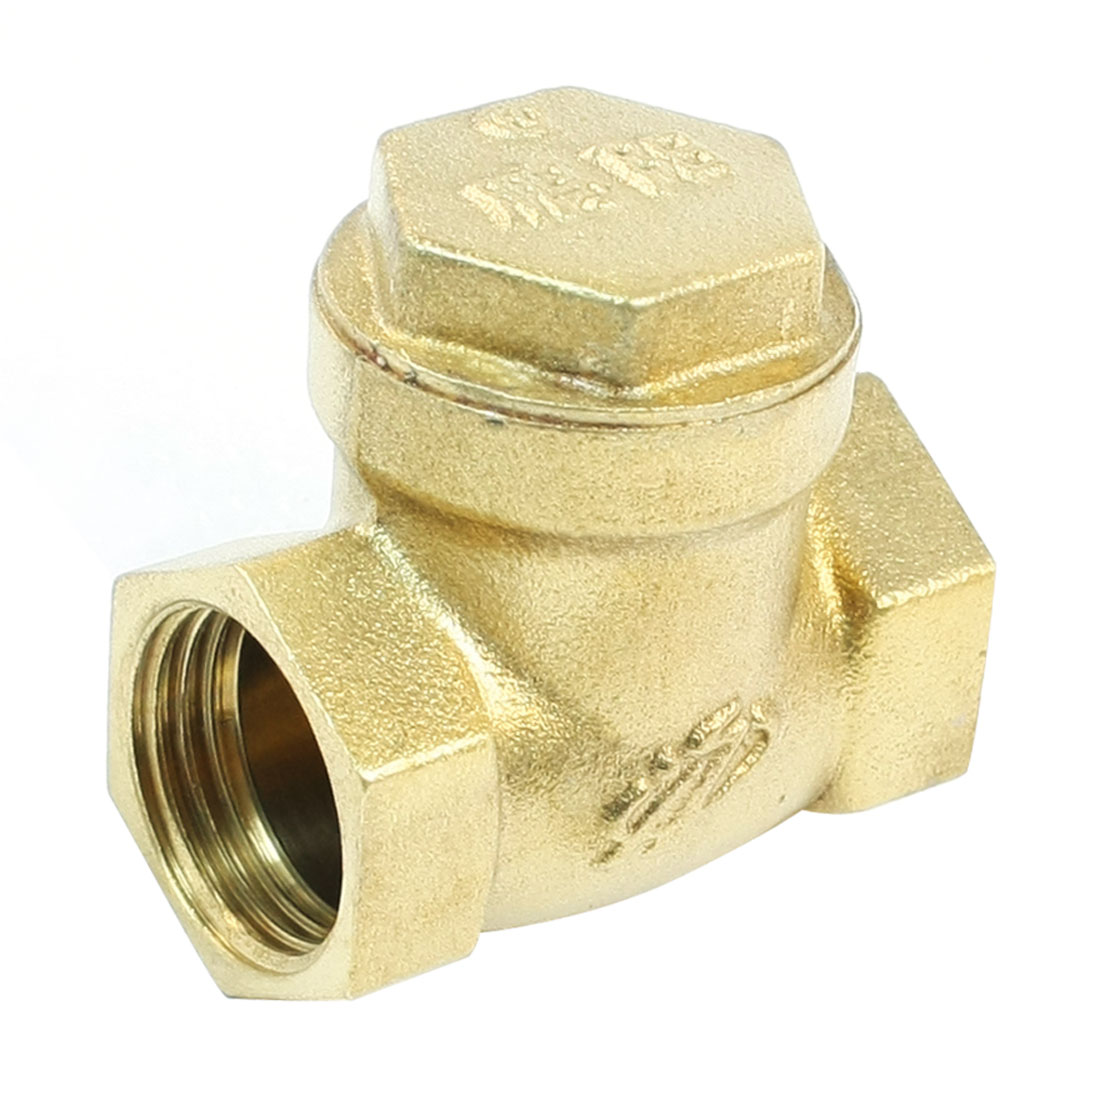 "Brass Tone 1/2""PT Female Thread Plumbing Heater Check Valve"